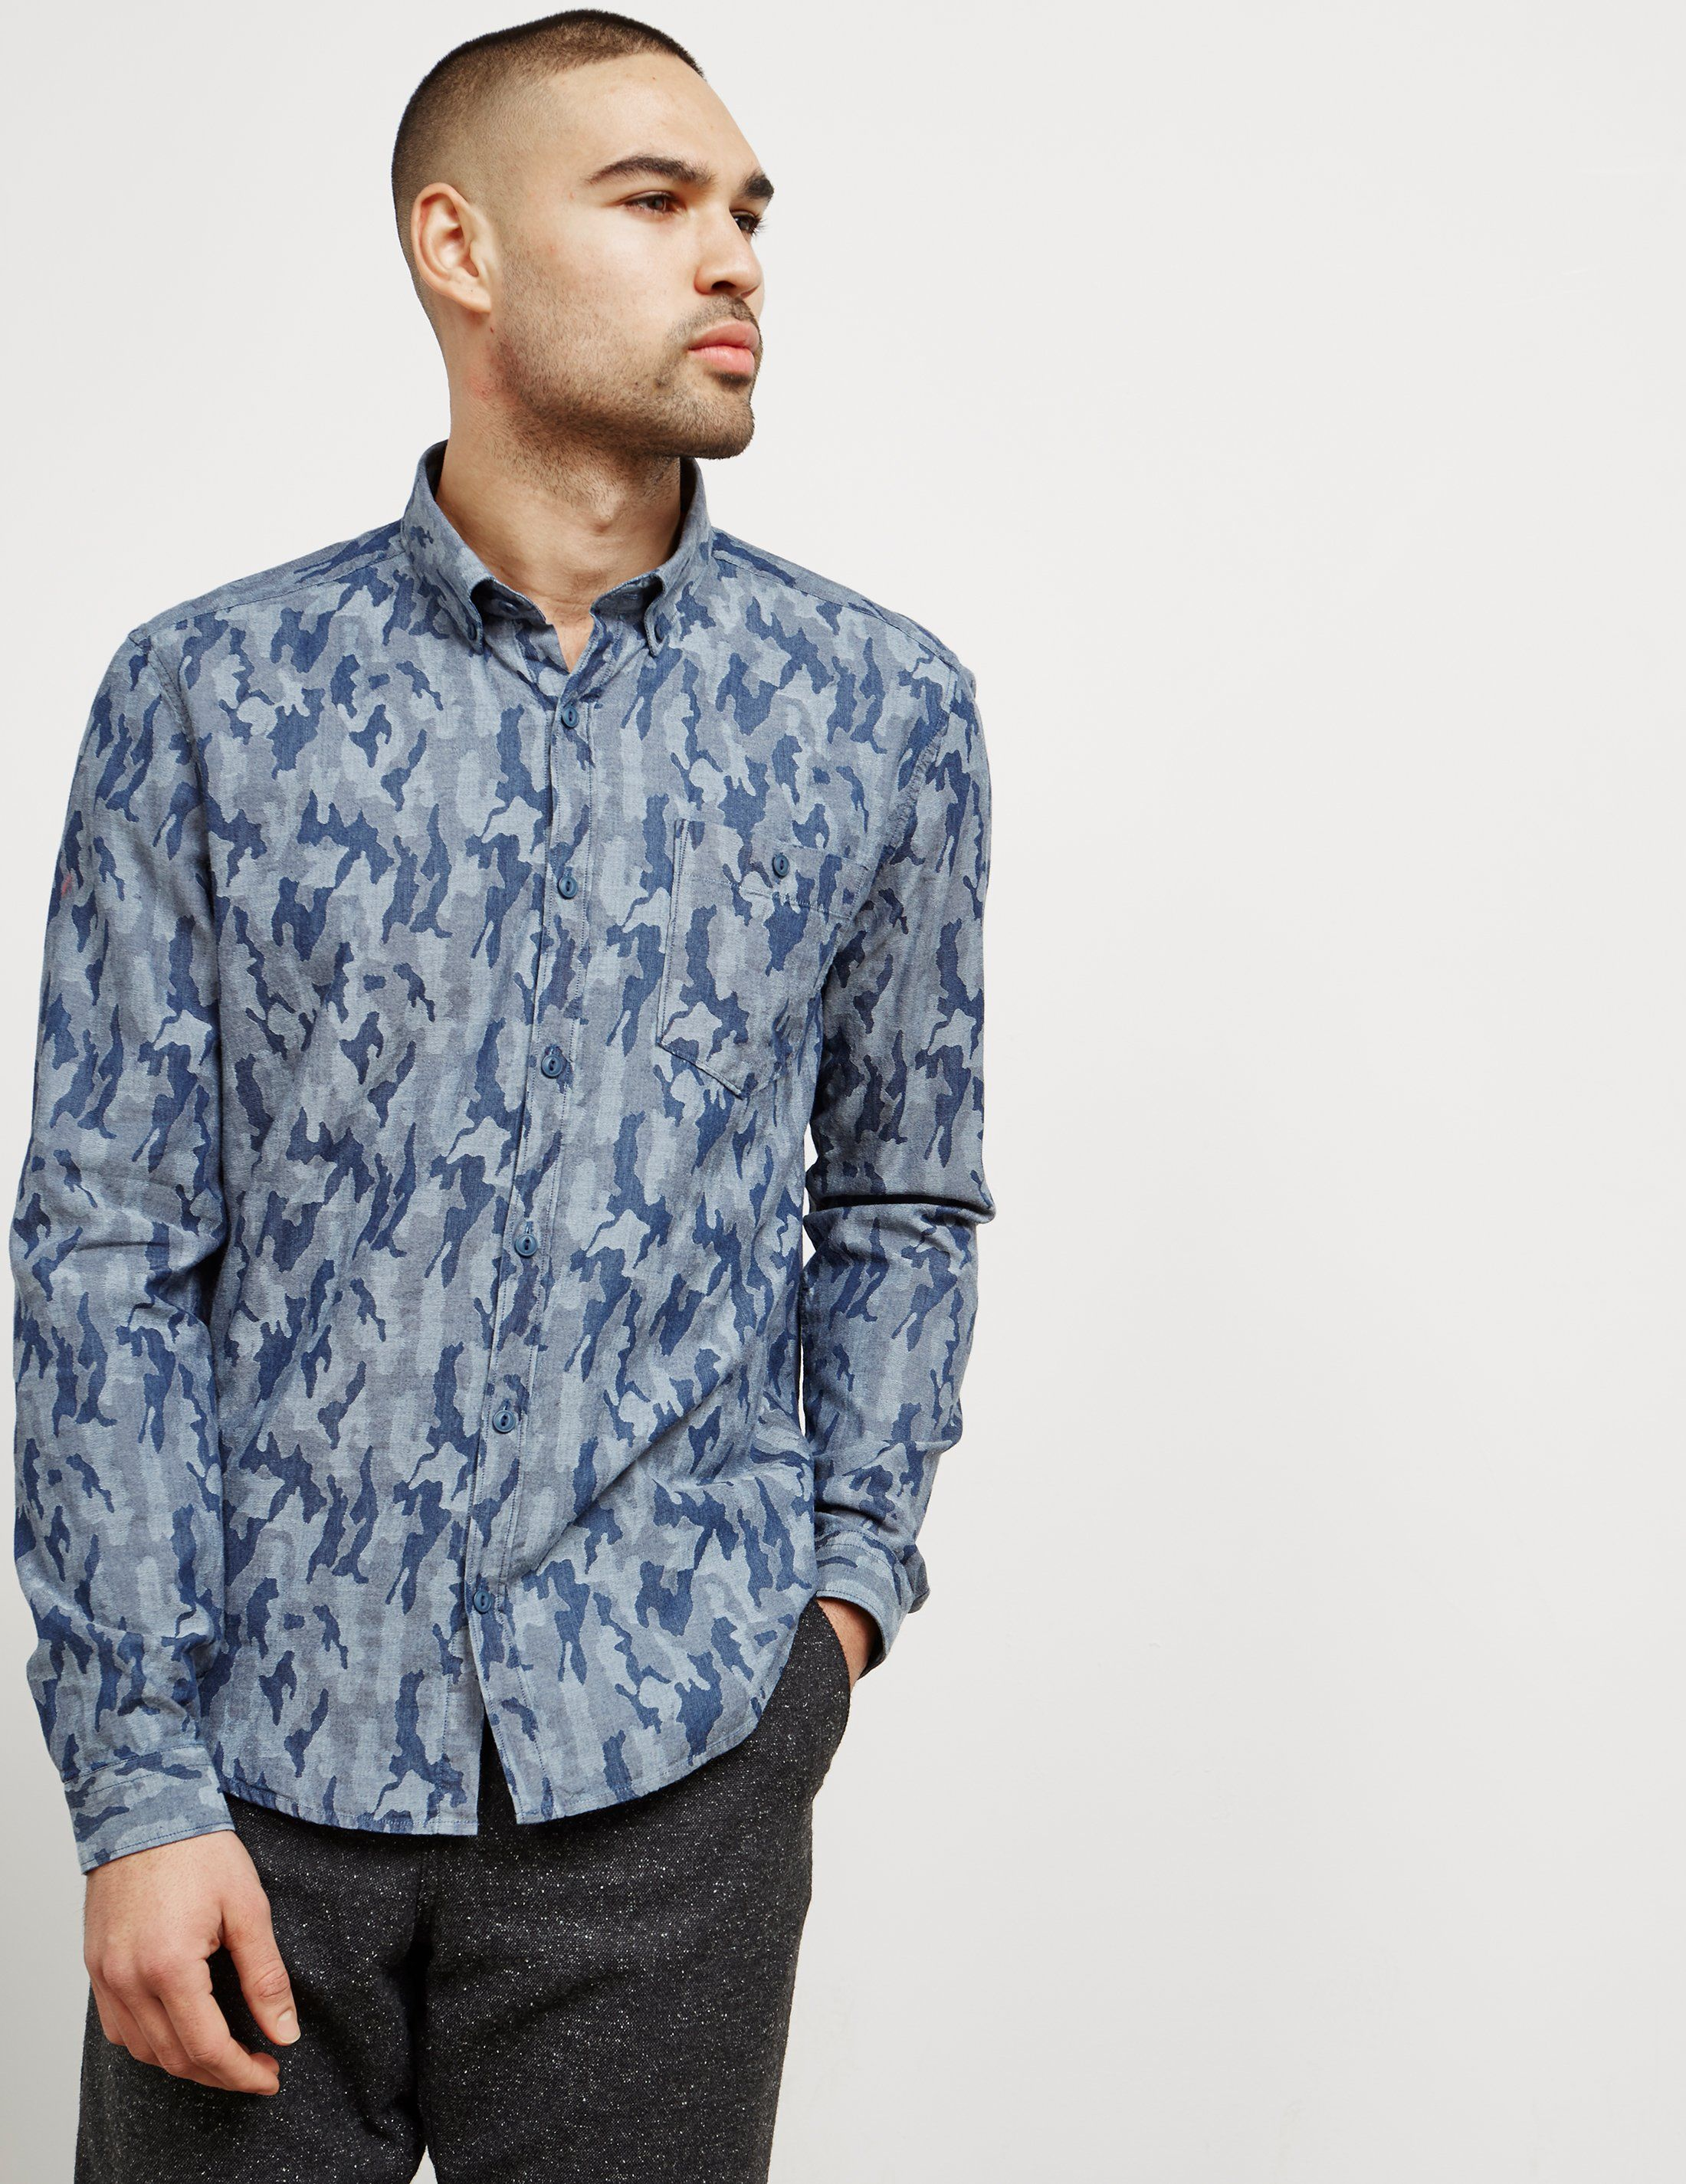 Barbour Camouflage Long Sleeve Shirt - Online Exclusive